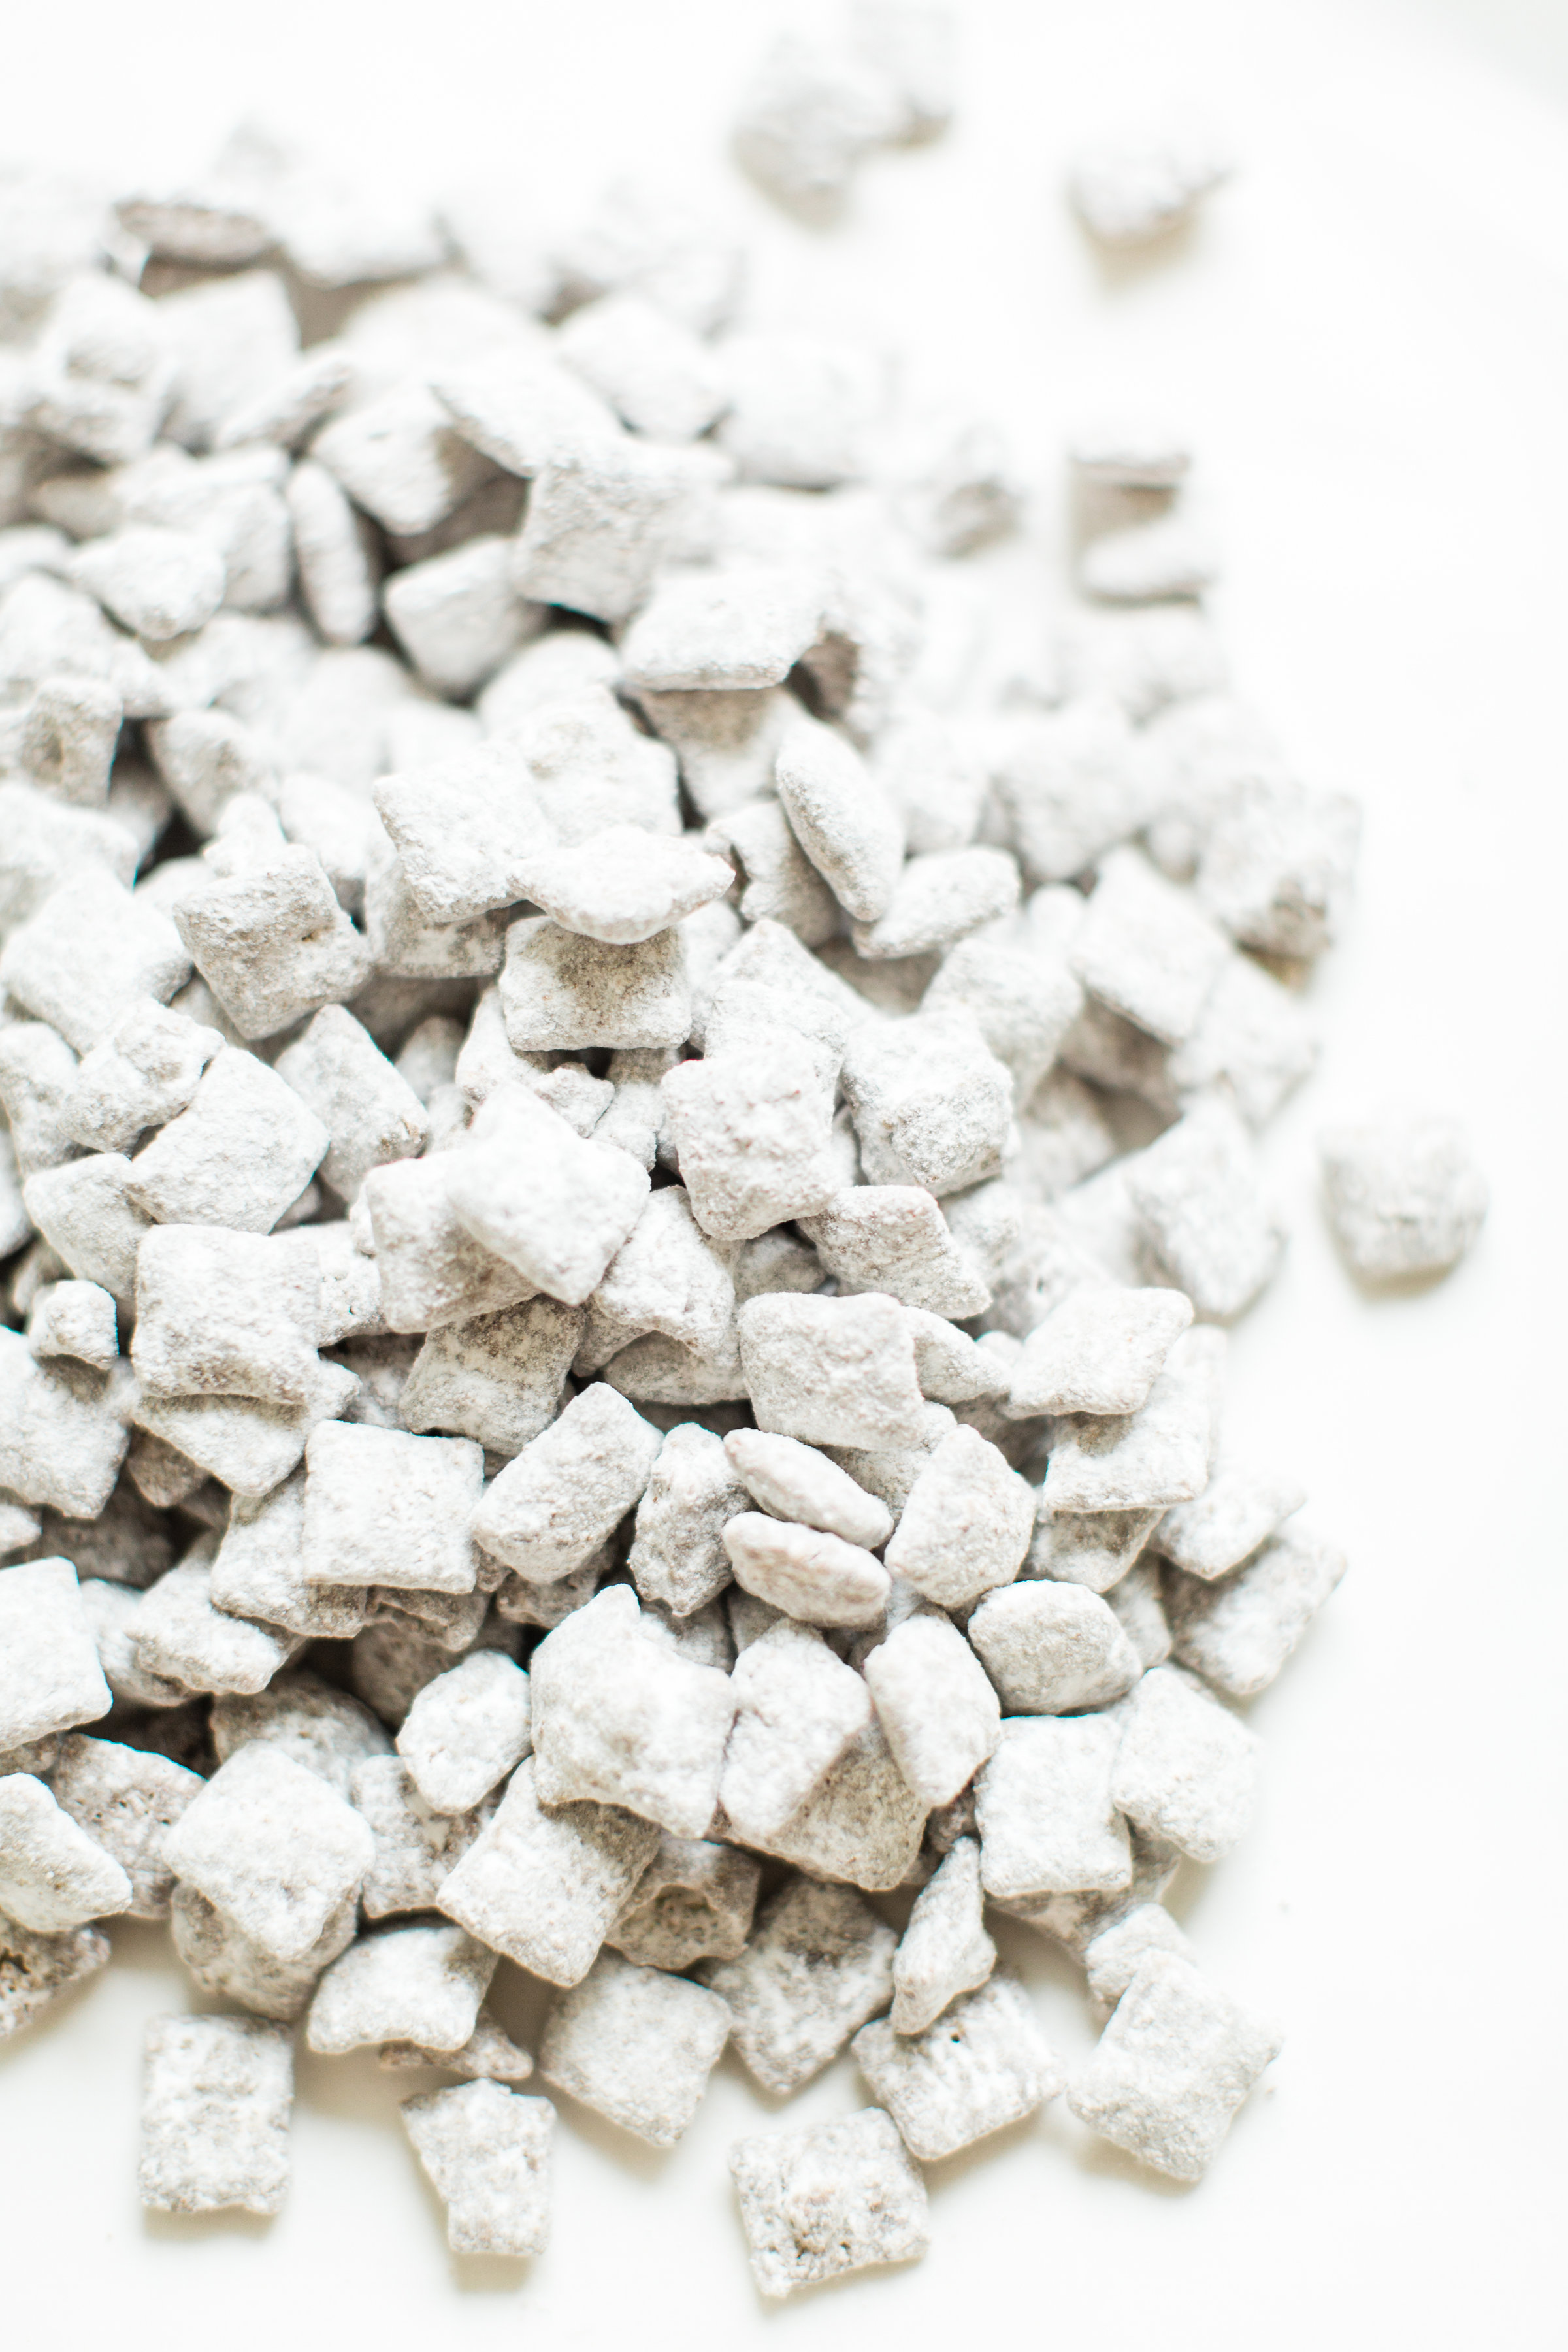 Positively addictive classic Puppy Chow Muddy Buddies - comes together in minutes, is no-bake, and can be made up in big batches - perfect for gifting! Click through for the recipe. #puppychow #holidayrecipe #holidaygift #dairyfree #vegan #vegandessert | glitterinc.com | @glitterinc